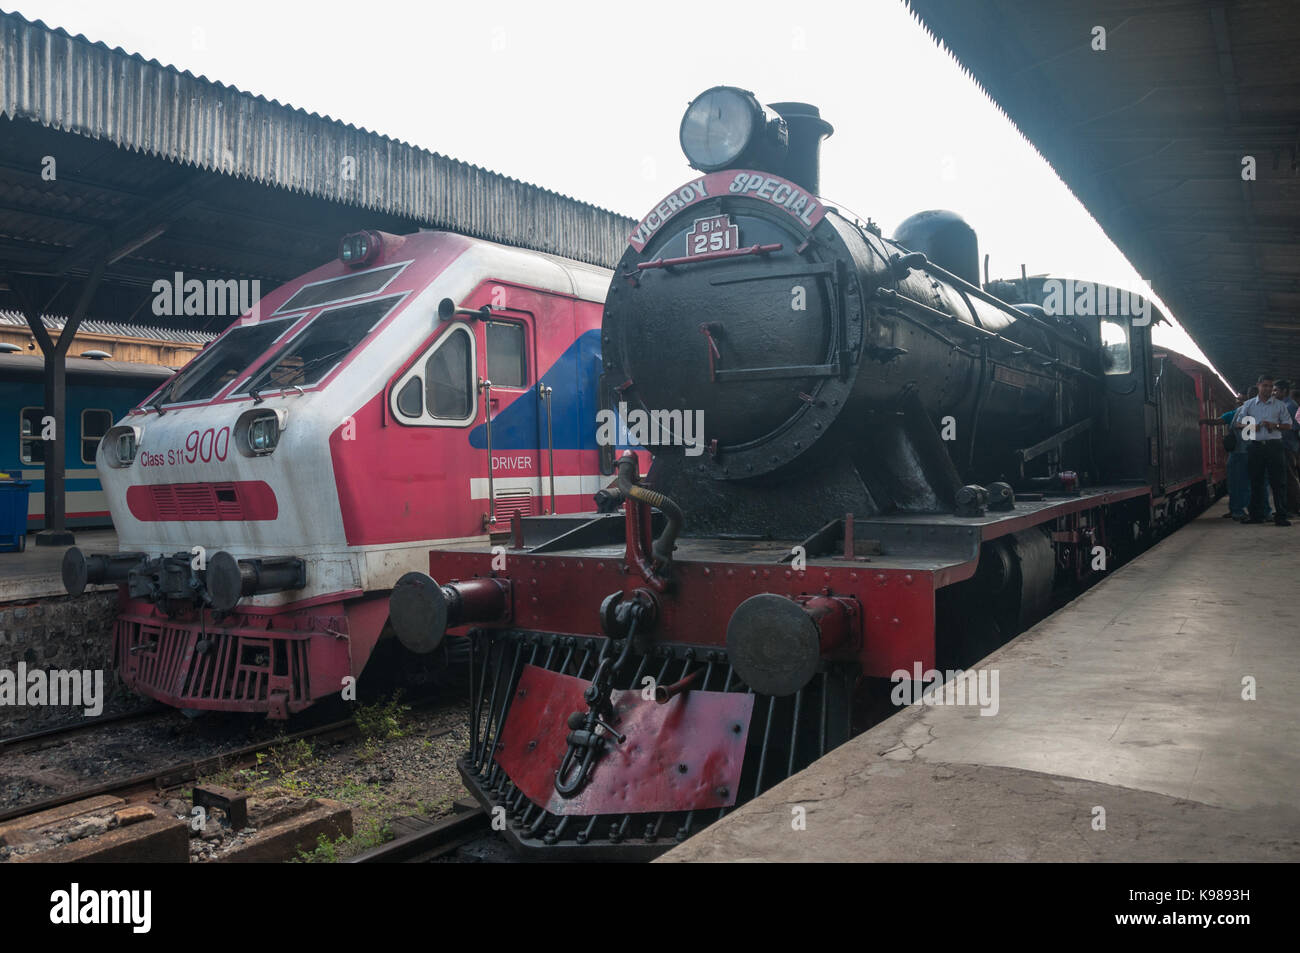 The Viceroy Special hauled by 251 Sir Thomas Maitland at Colombo Fort Station next to a Chinese made Class S11 diesel. - Stock Image